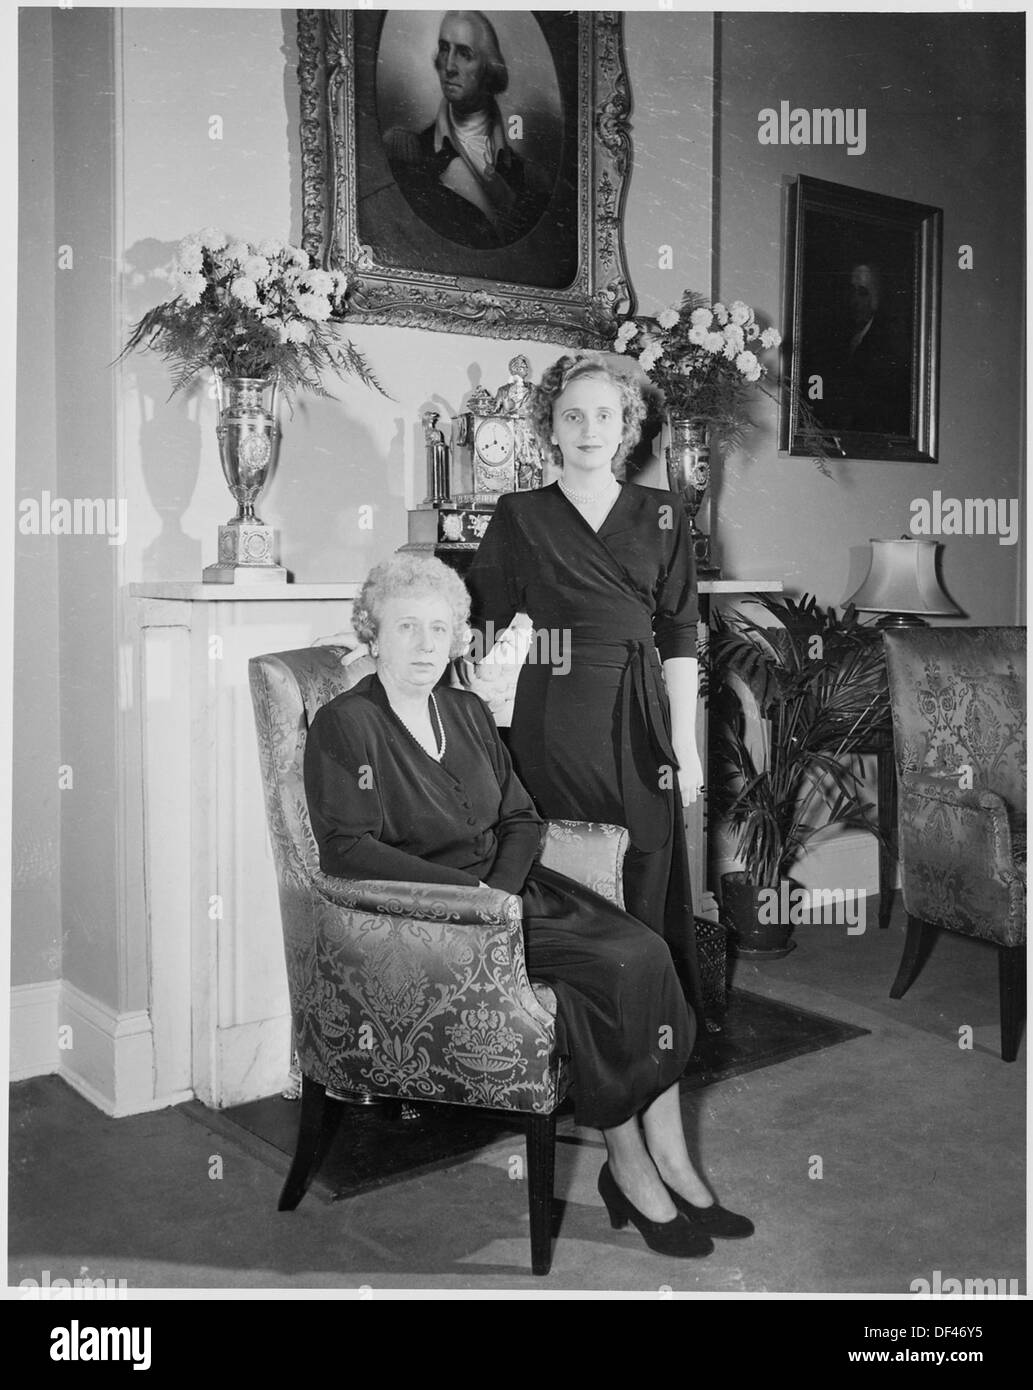 First Lady Bess Truman poses with her daughter, Margaret, for a portrait photograph in front of the fireplace at... 200024 - Stock Image